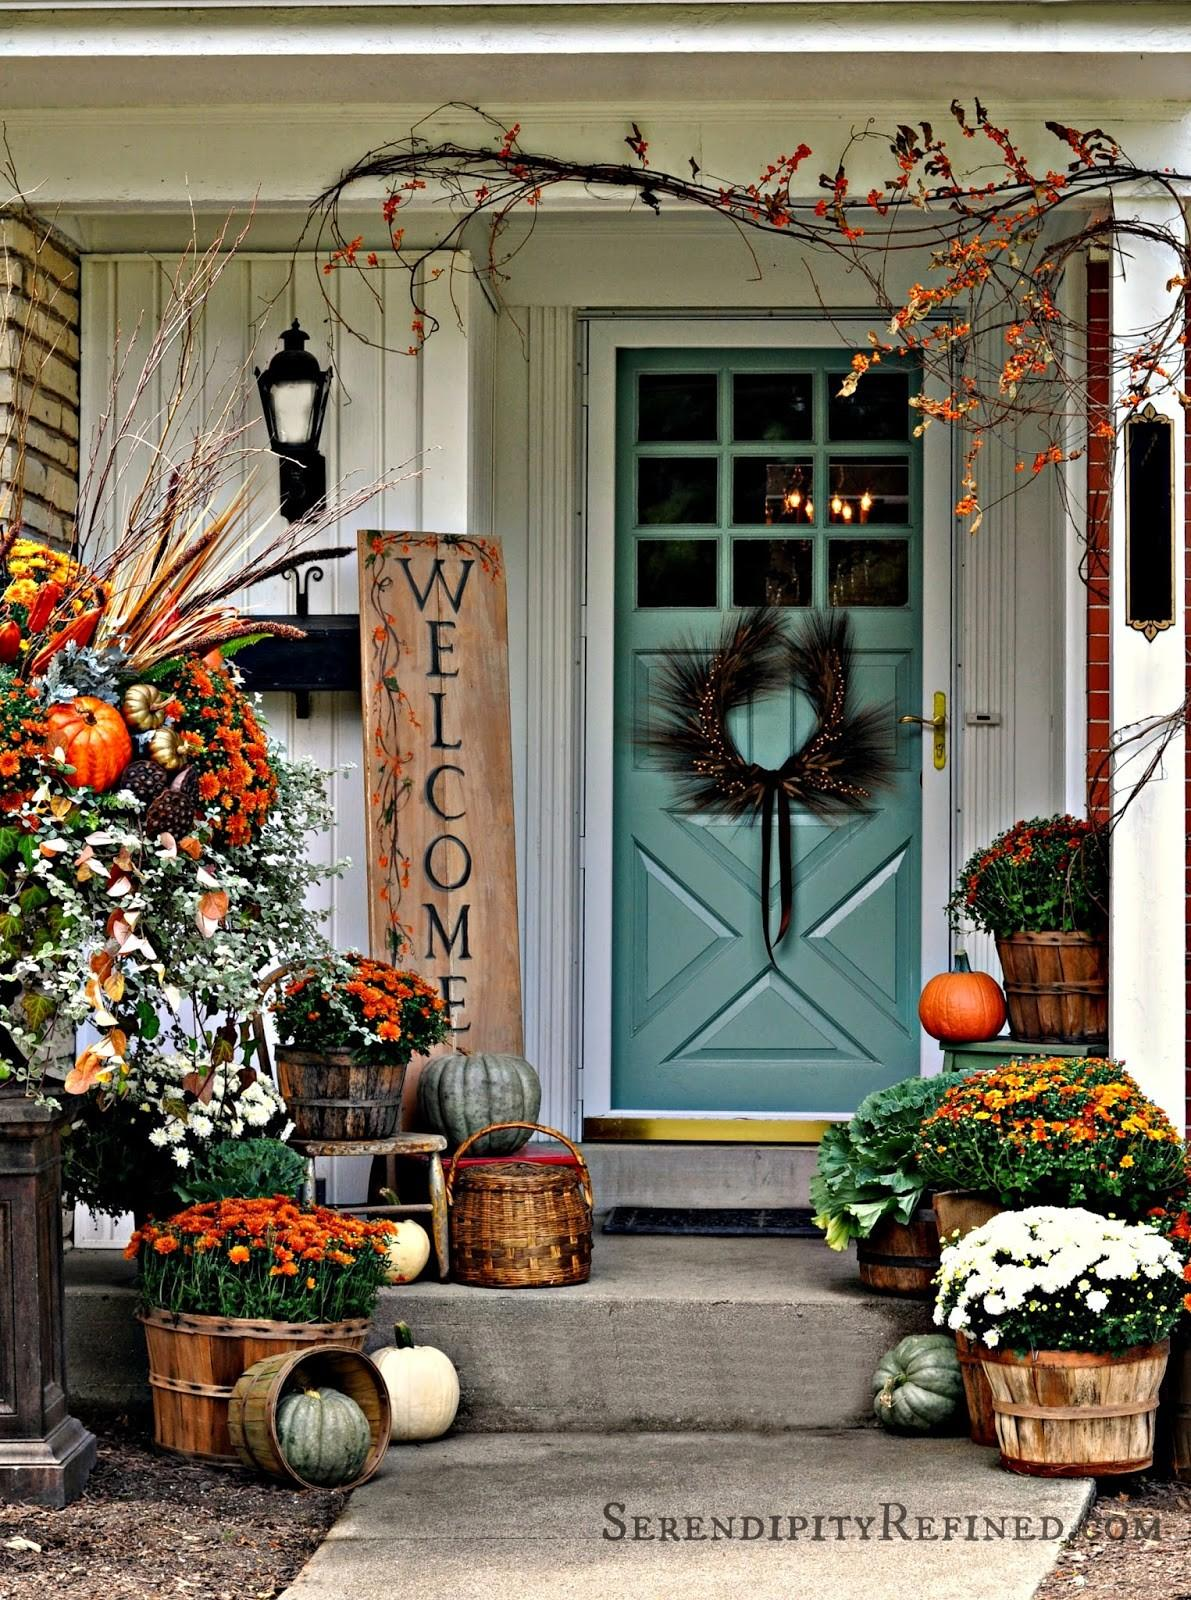 Serendipity Refined Blog Fall Harvest Porch Decor